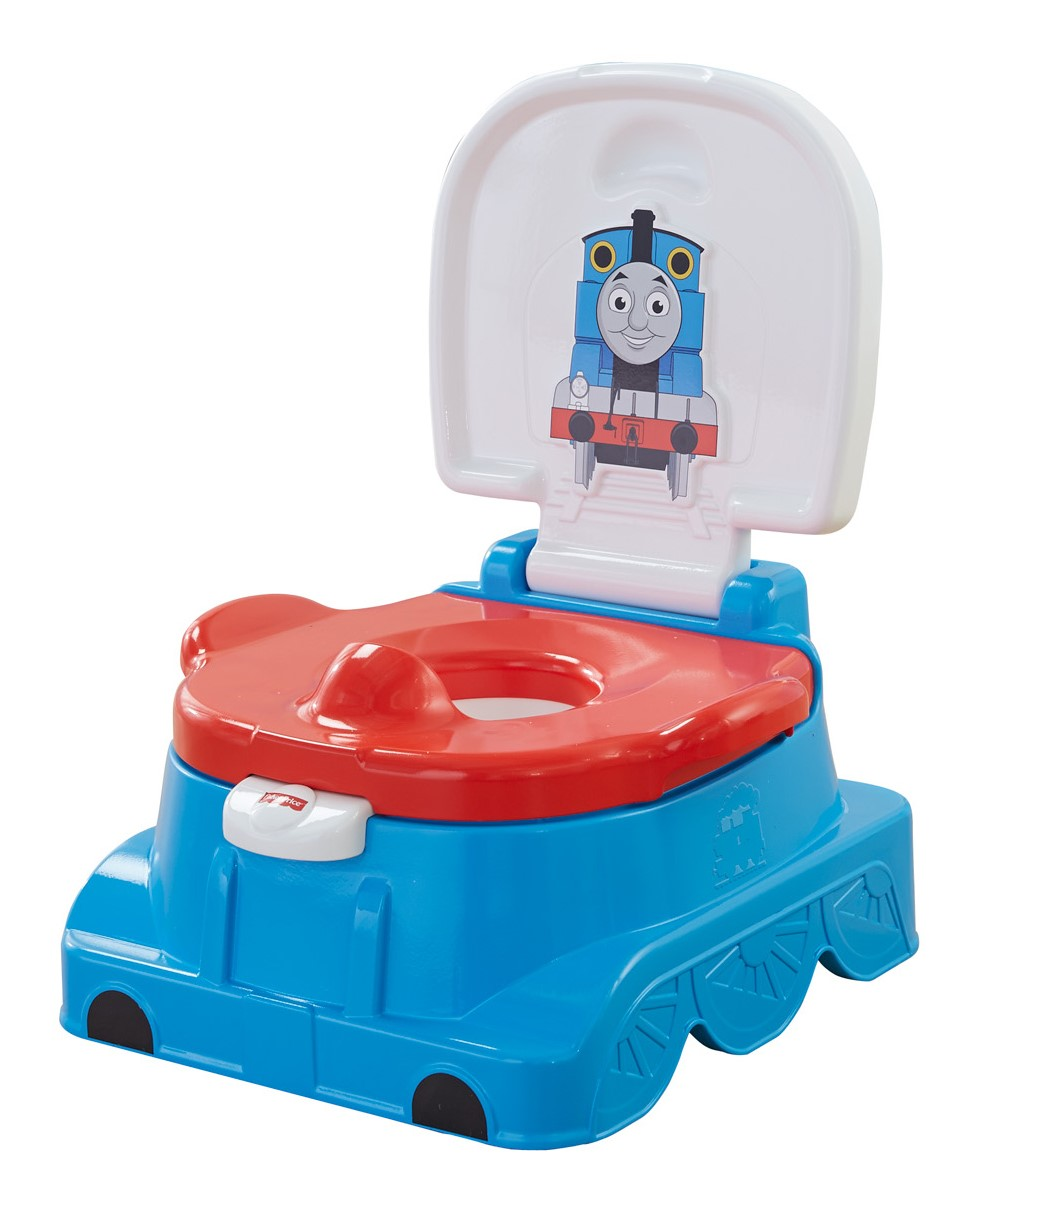 Thomas & Friends Railroad Rewards Potty Training Seat, Blue by Fisher-Price